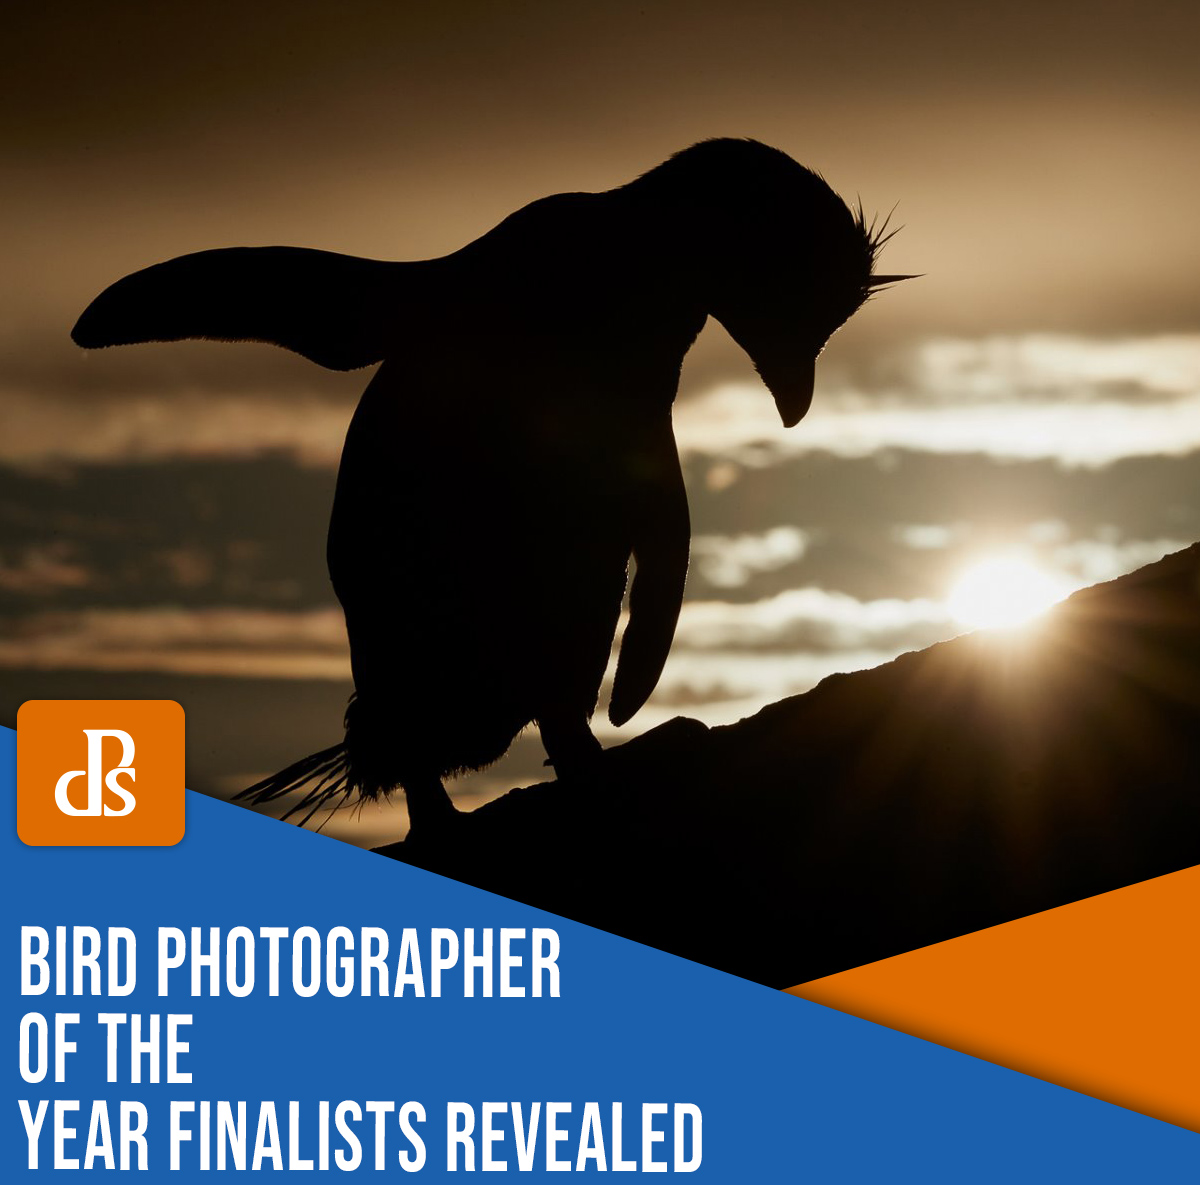 https://i0.wp.com/digital-photography-school.com/wp-content/uploads/2021/04/bird-photographer-of-the-year-finalists-1001.jpg?resize=1200%2C1185&ssl=1